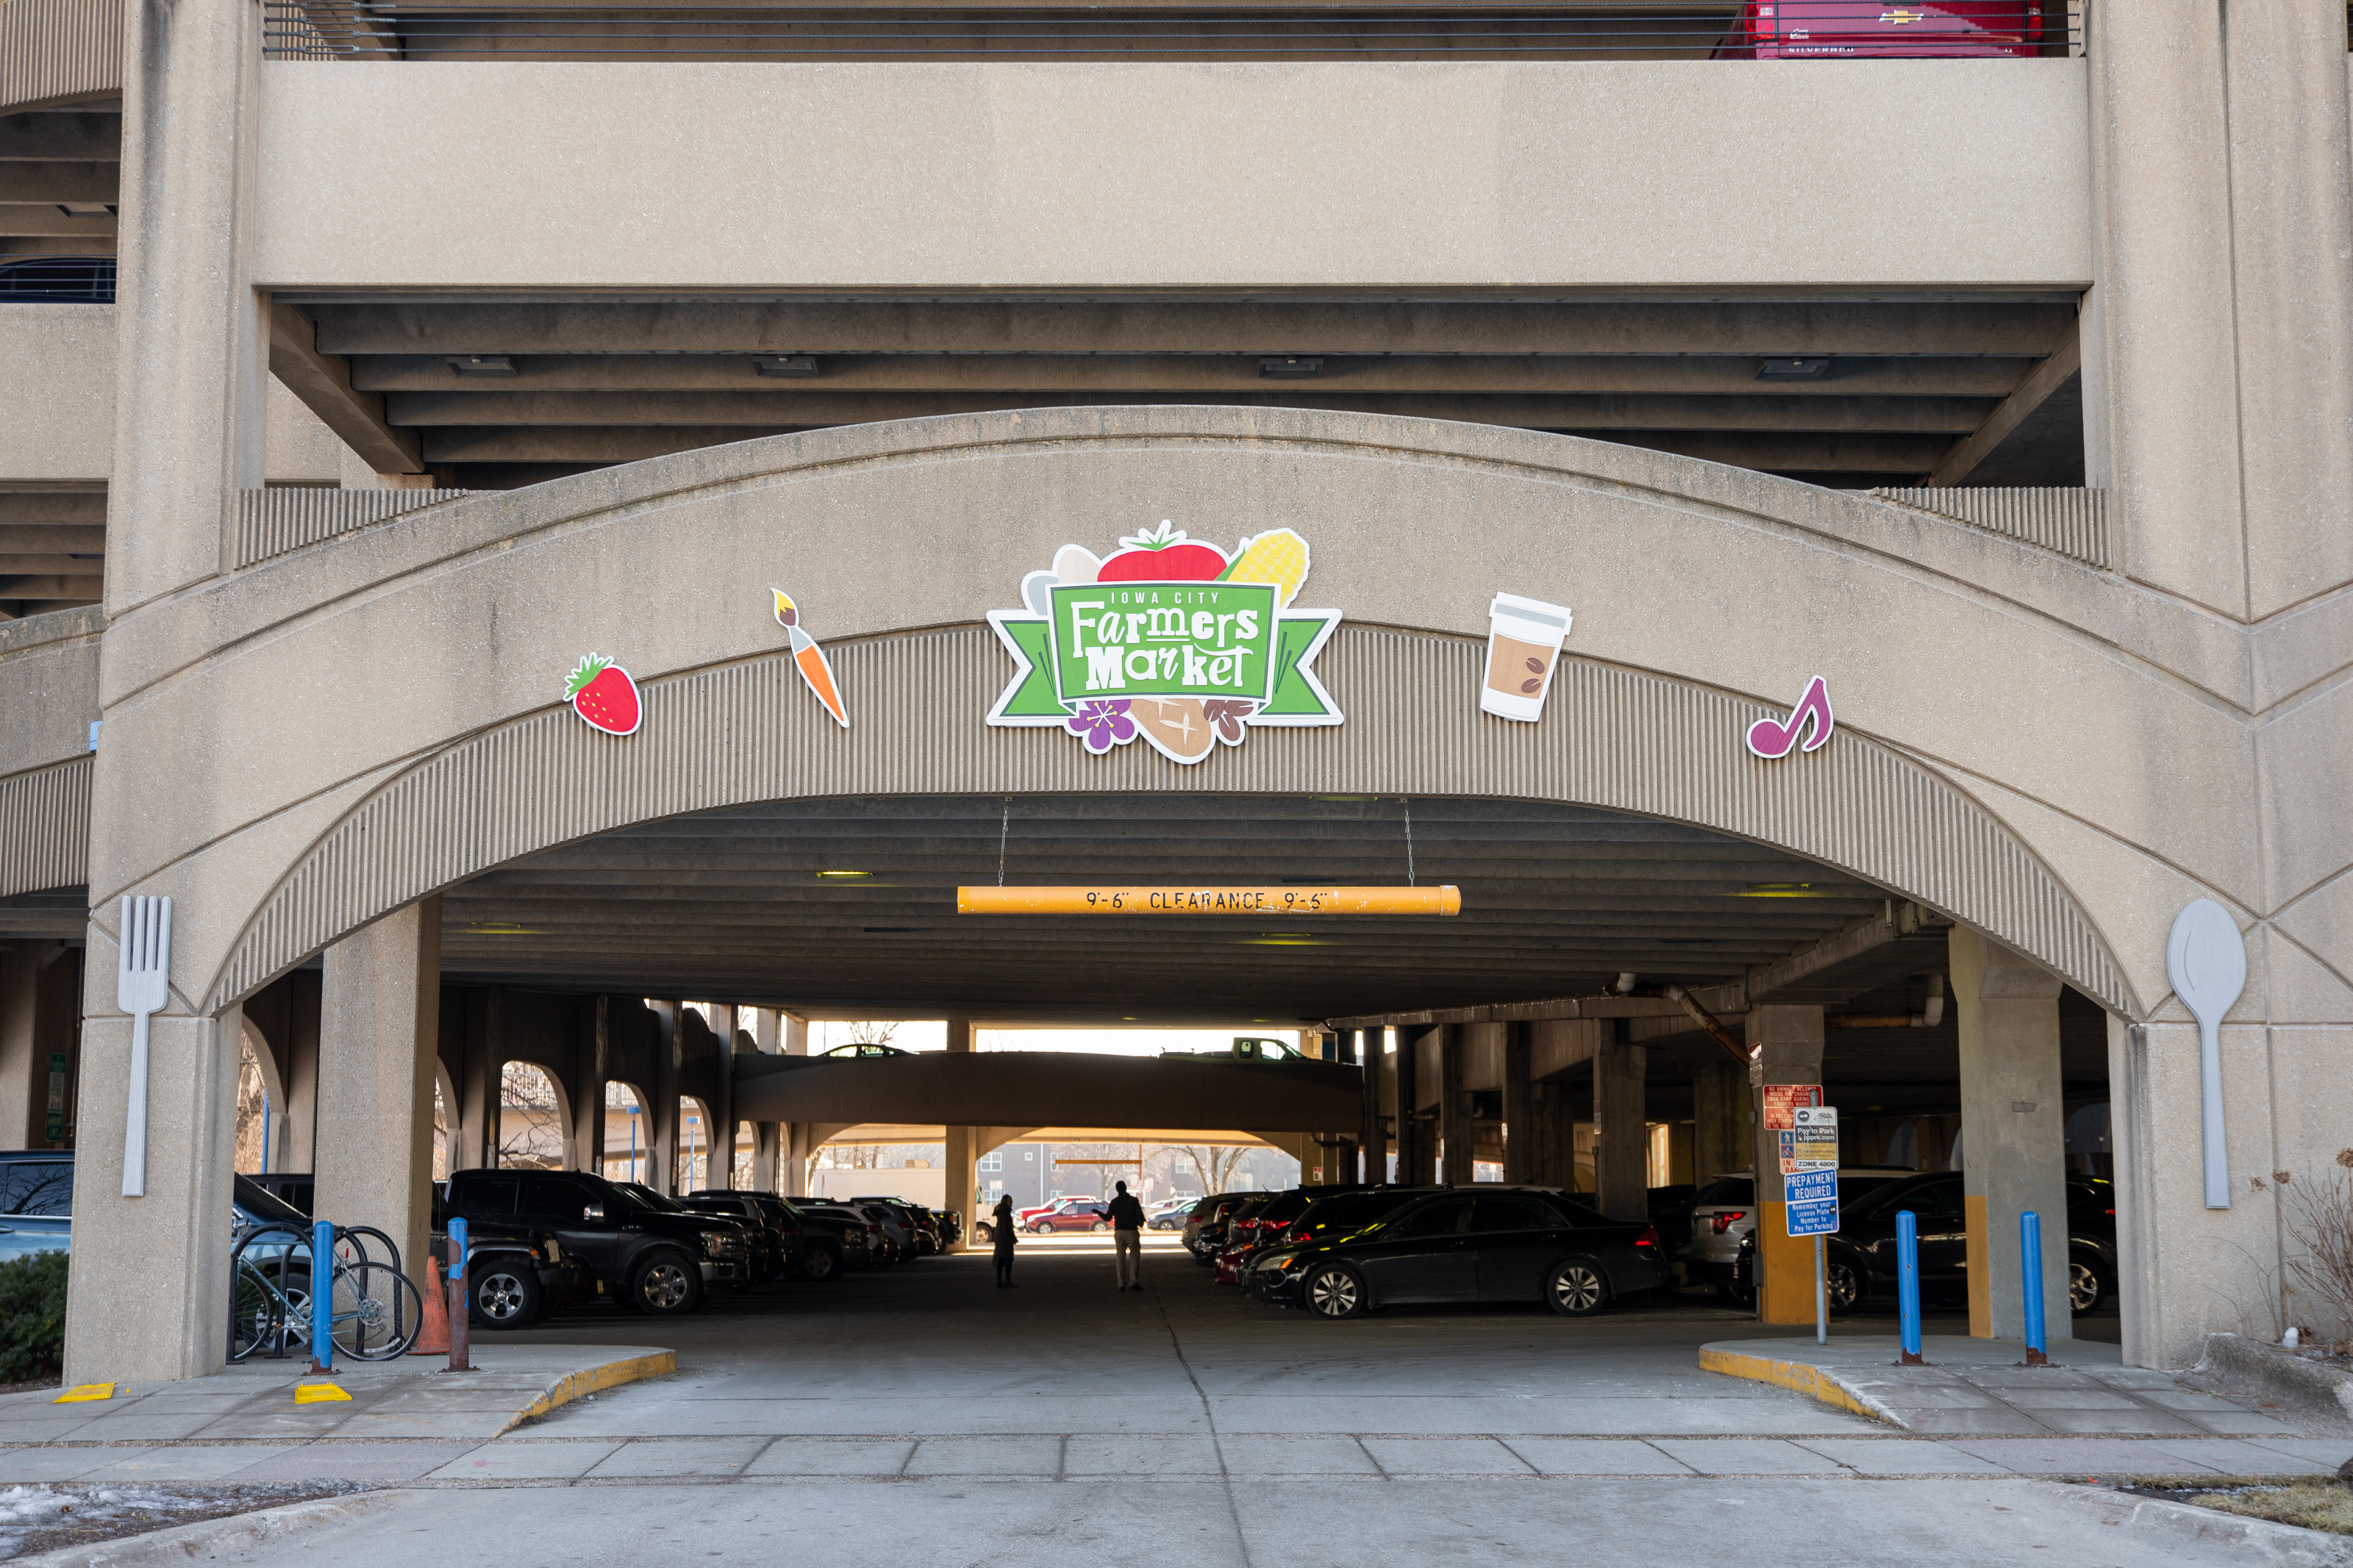 New artwork celebrating the Farmers Market at the Chauncey Swan Parking Ramp is shown.